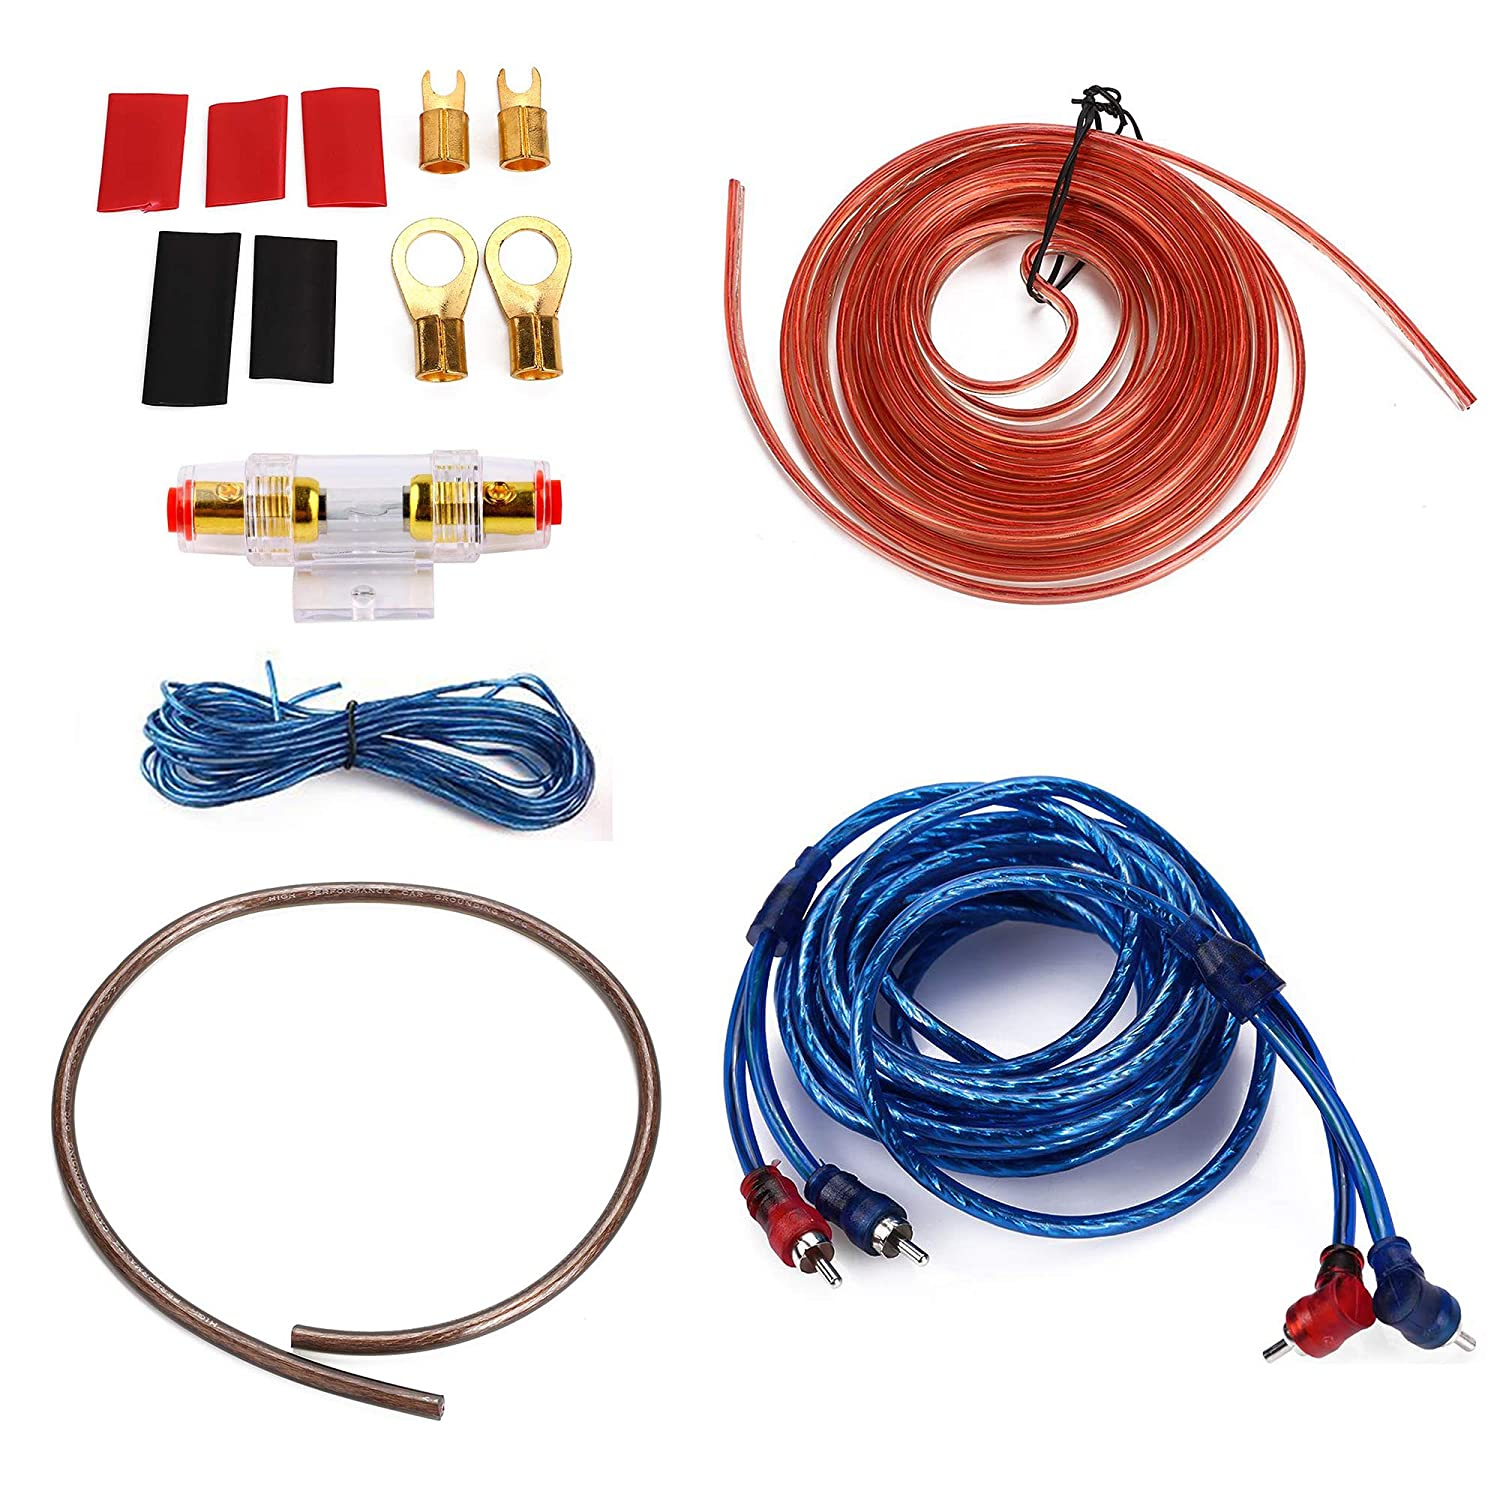 1500W 8GA Car Audio Subwoofer Amplifier Installation Kit for Amp Install Wiring Complete RCA Cable ShongooJoy